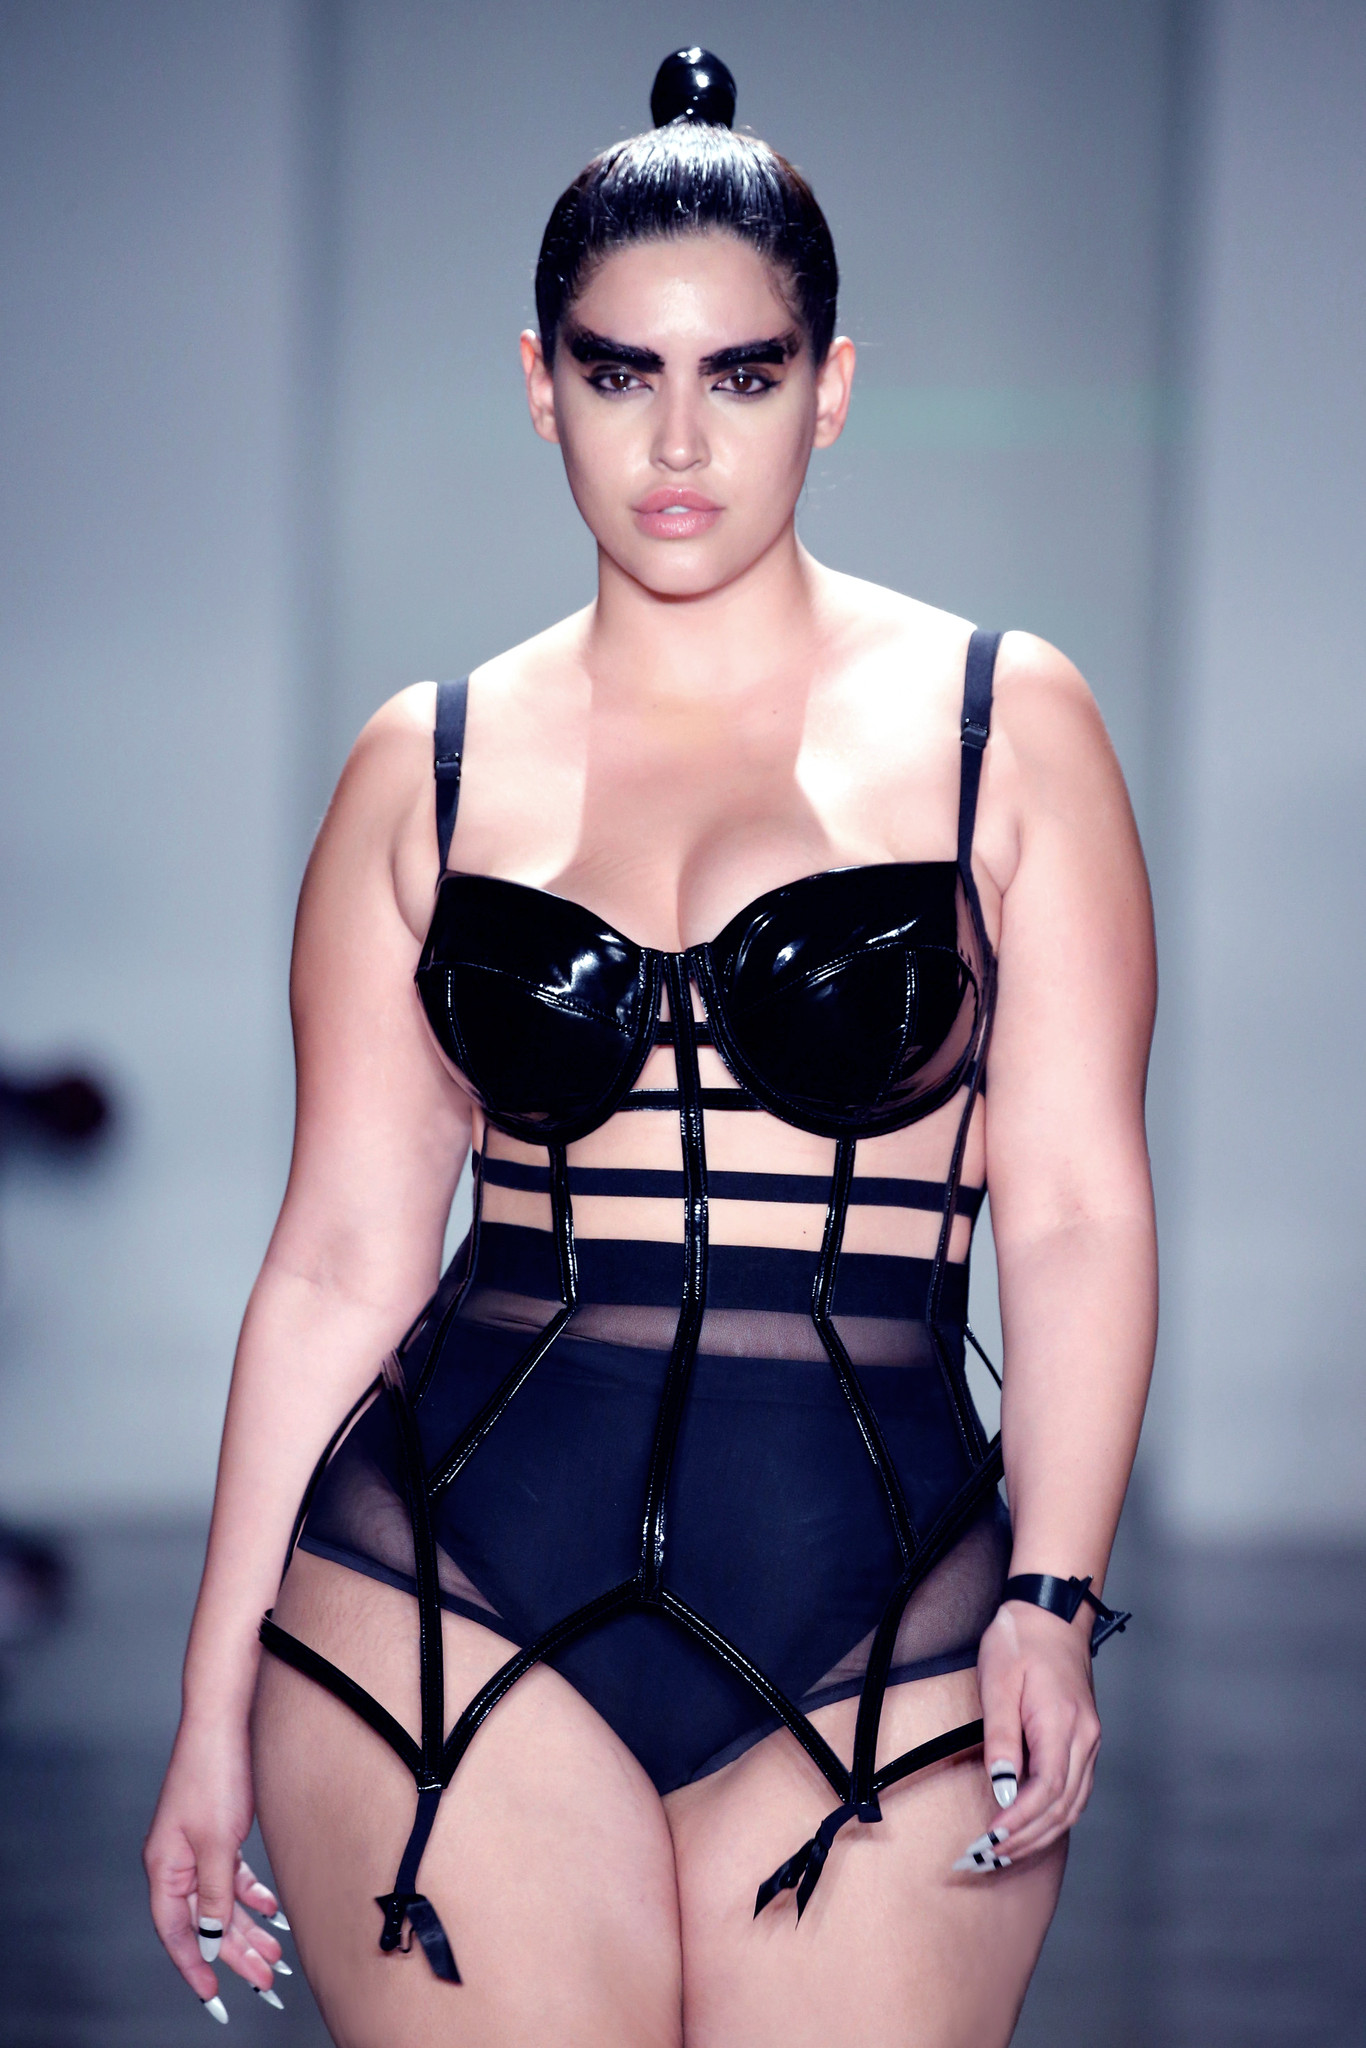 NEW YORK, NY - FEBRUARY 13:  A model walks the runway at the Chromat AW15: Mindware fashion show during Mercedes-Benz Fashion Week Fall 2015 at Milk Studios on February 13, 2015 in New York City.  (Photo by JP Yim/Getty Images for Chromat)